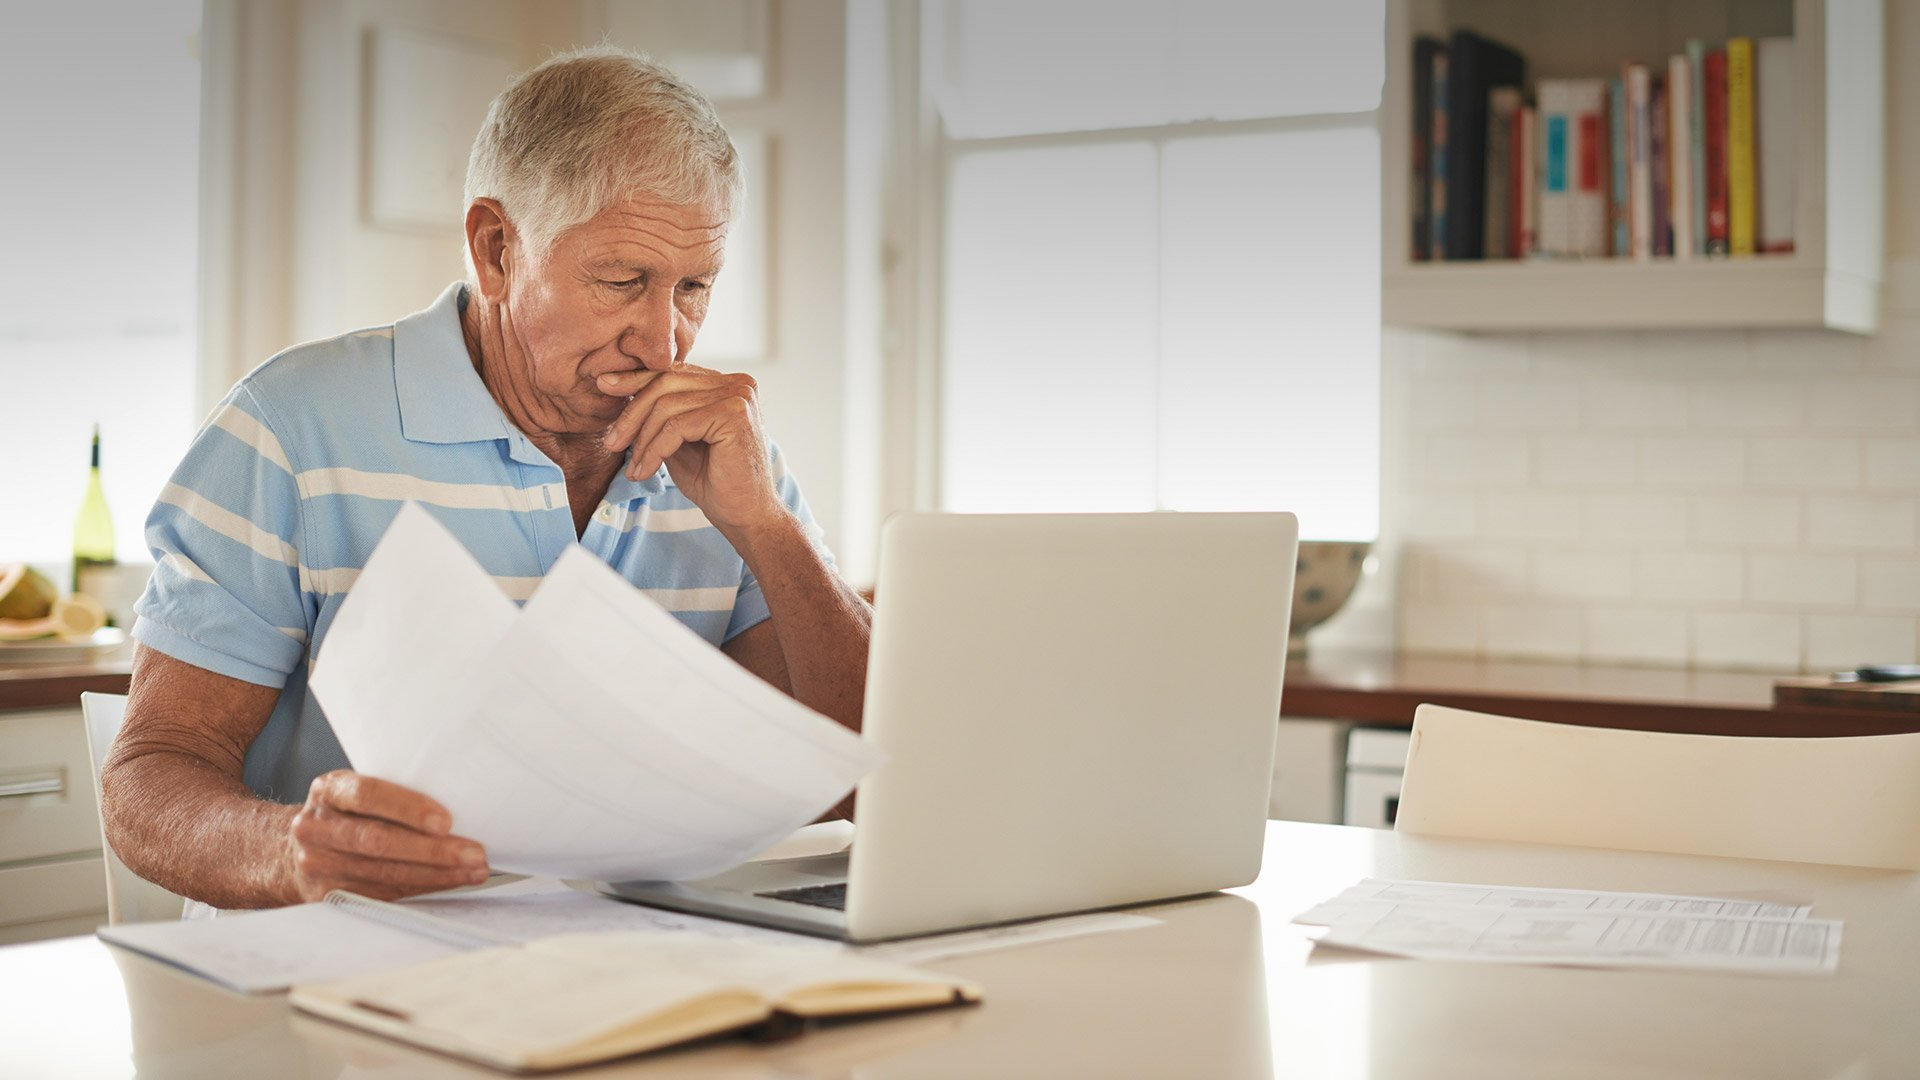 Elderly man staying up to date and following guidance from the CDC and your state and local public health departments.